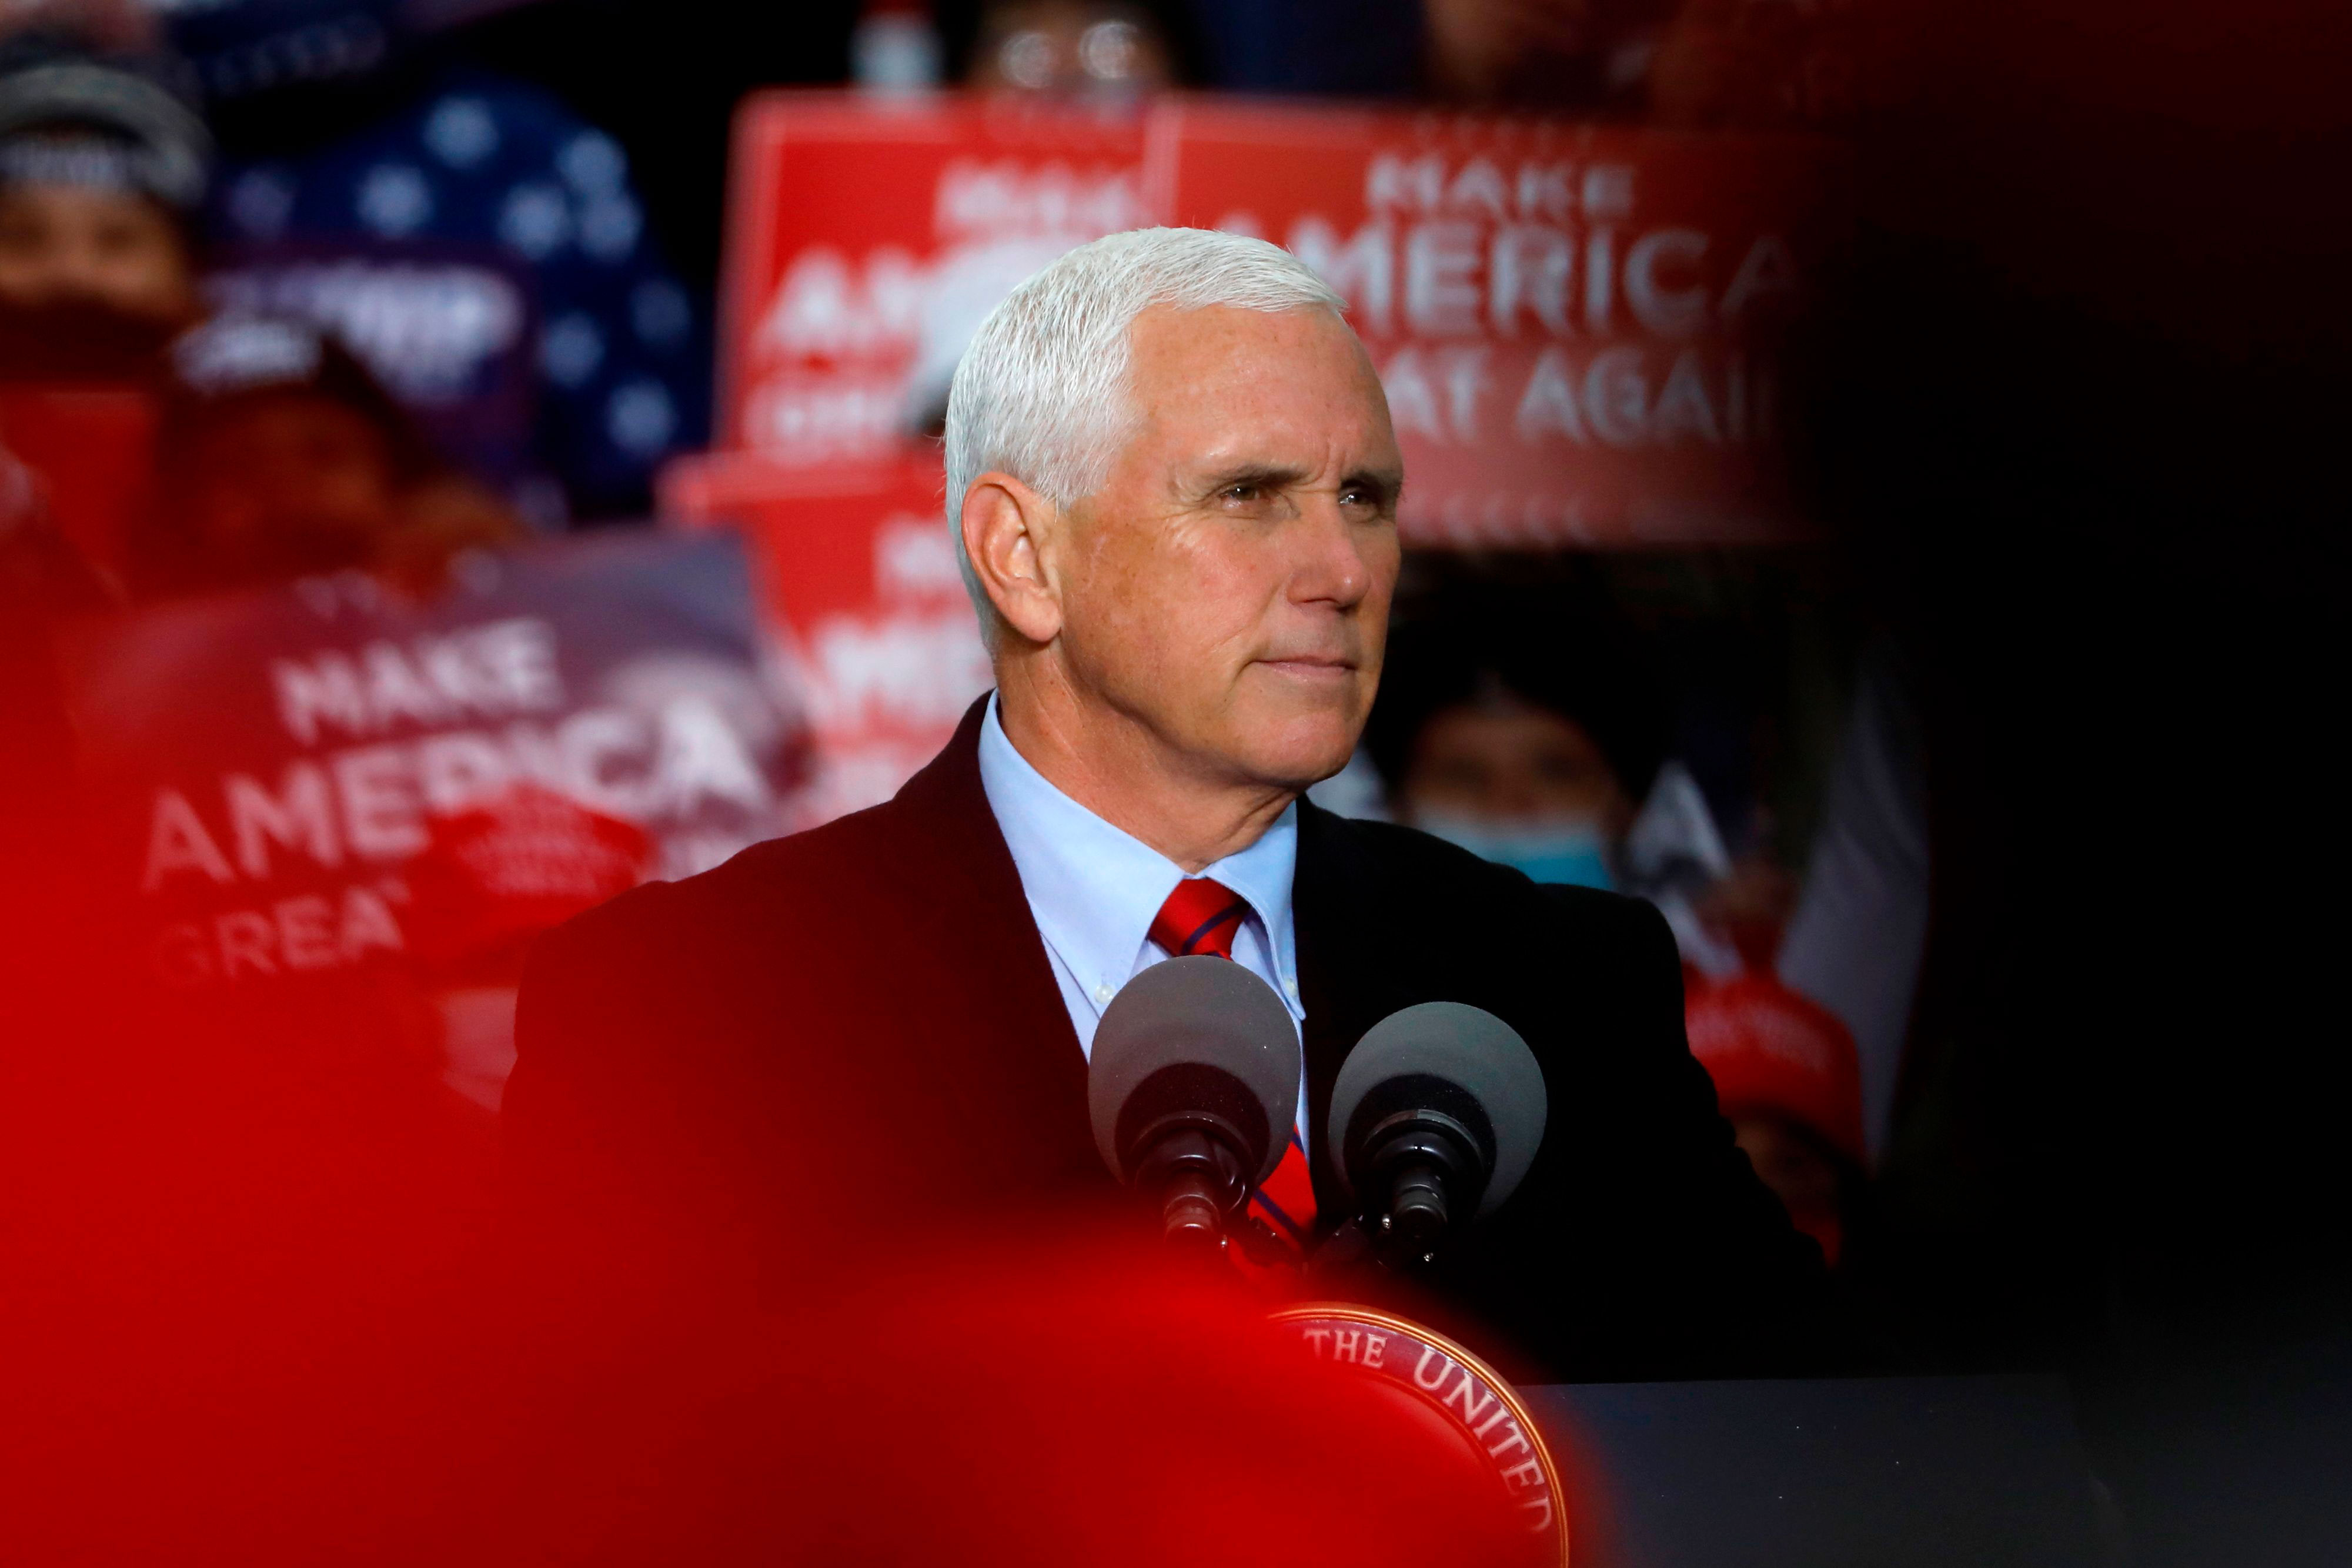 Vice President Mike Pence speaks during a campaign event at Oakland County International Airport in Waterford Township, Michigan, on October 22.